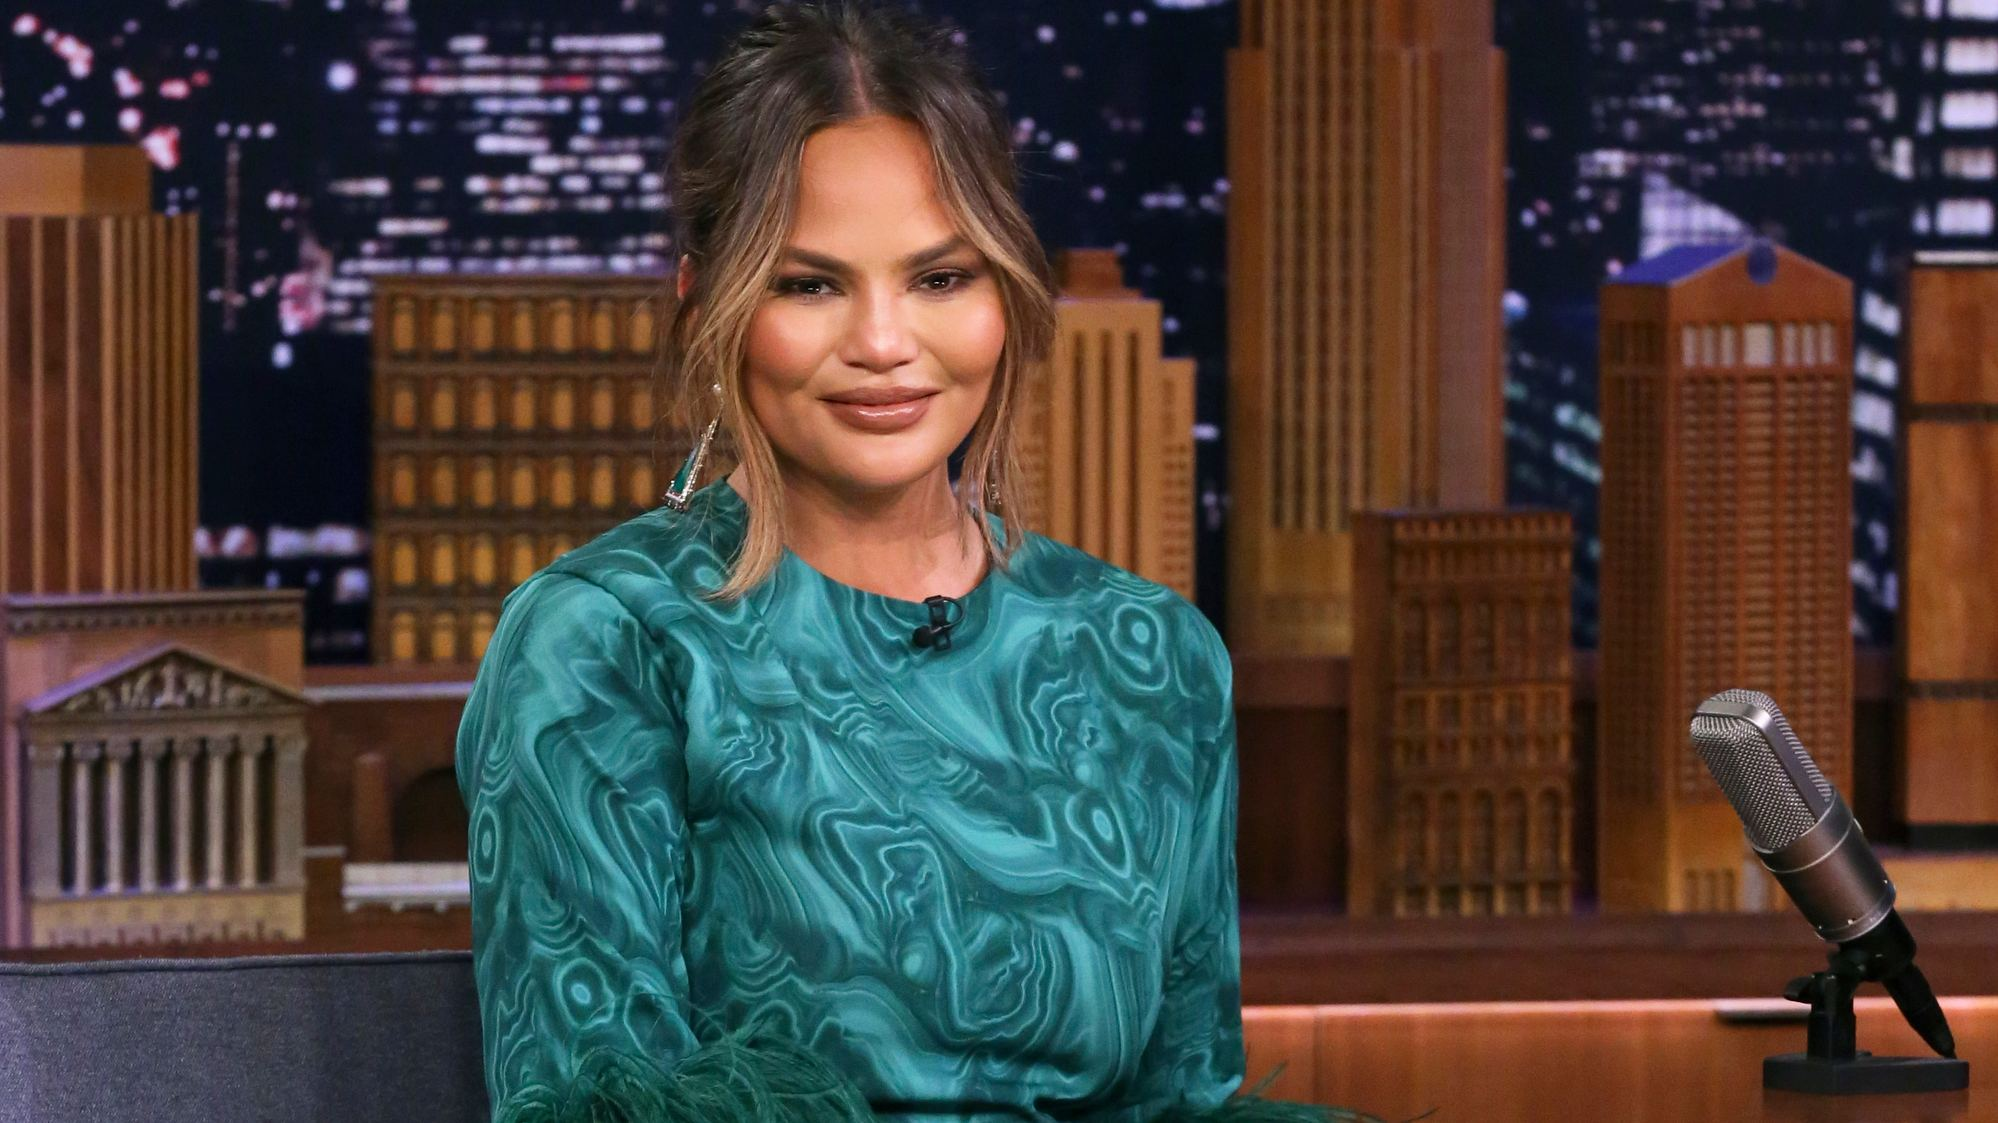 Chrissy Teigen's Mom Steals Her Look and Hilariously Asks Fans Who Wore It Best